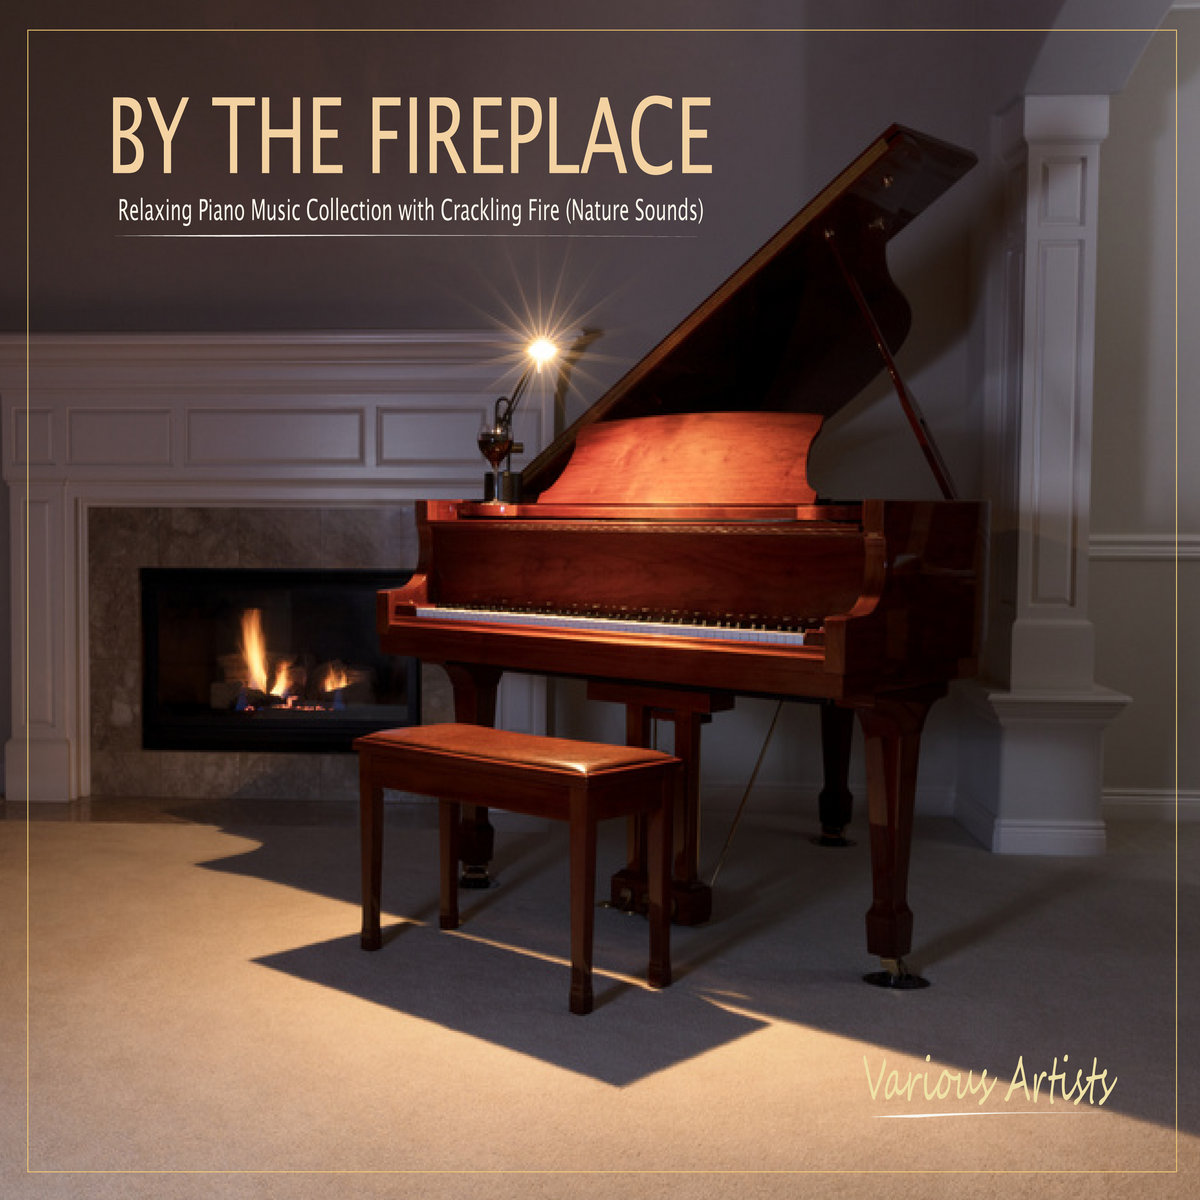 Fireplace Sounds By The Fireplace Relaxing Piano Music Collection With Crackling